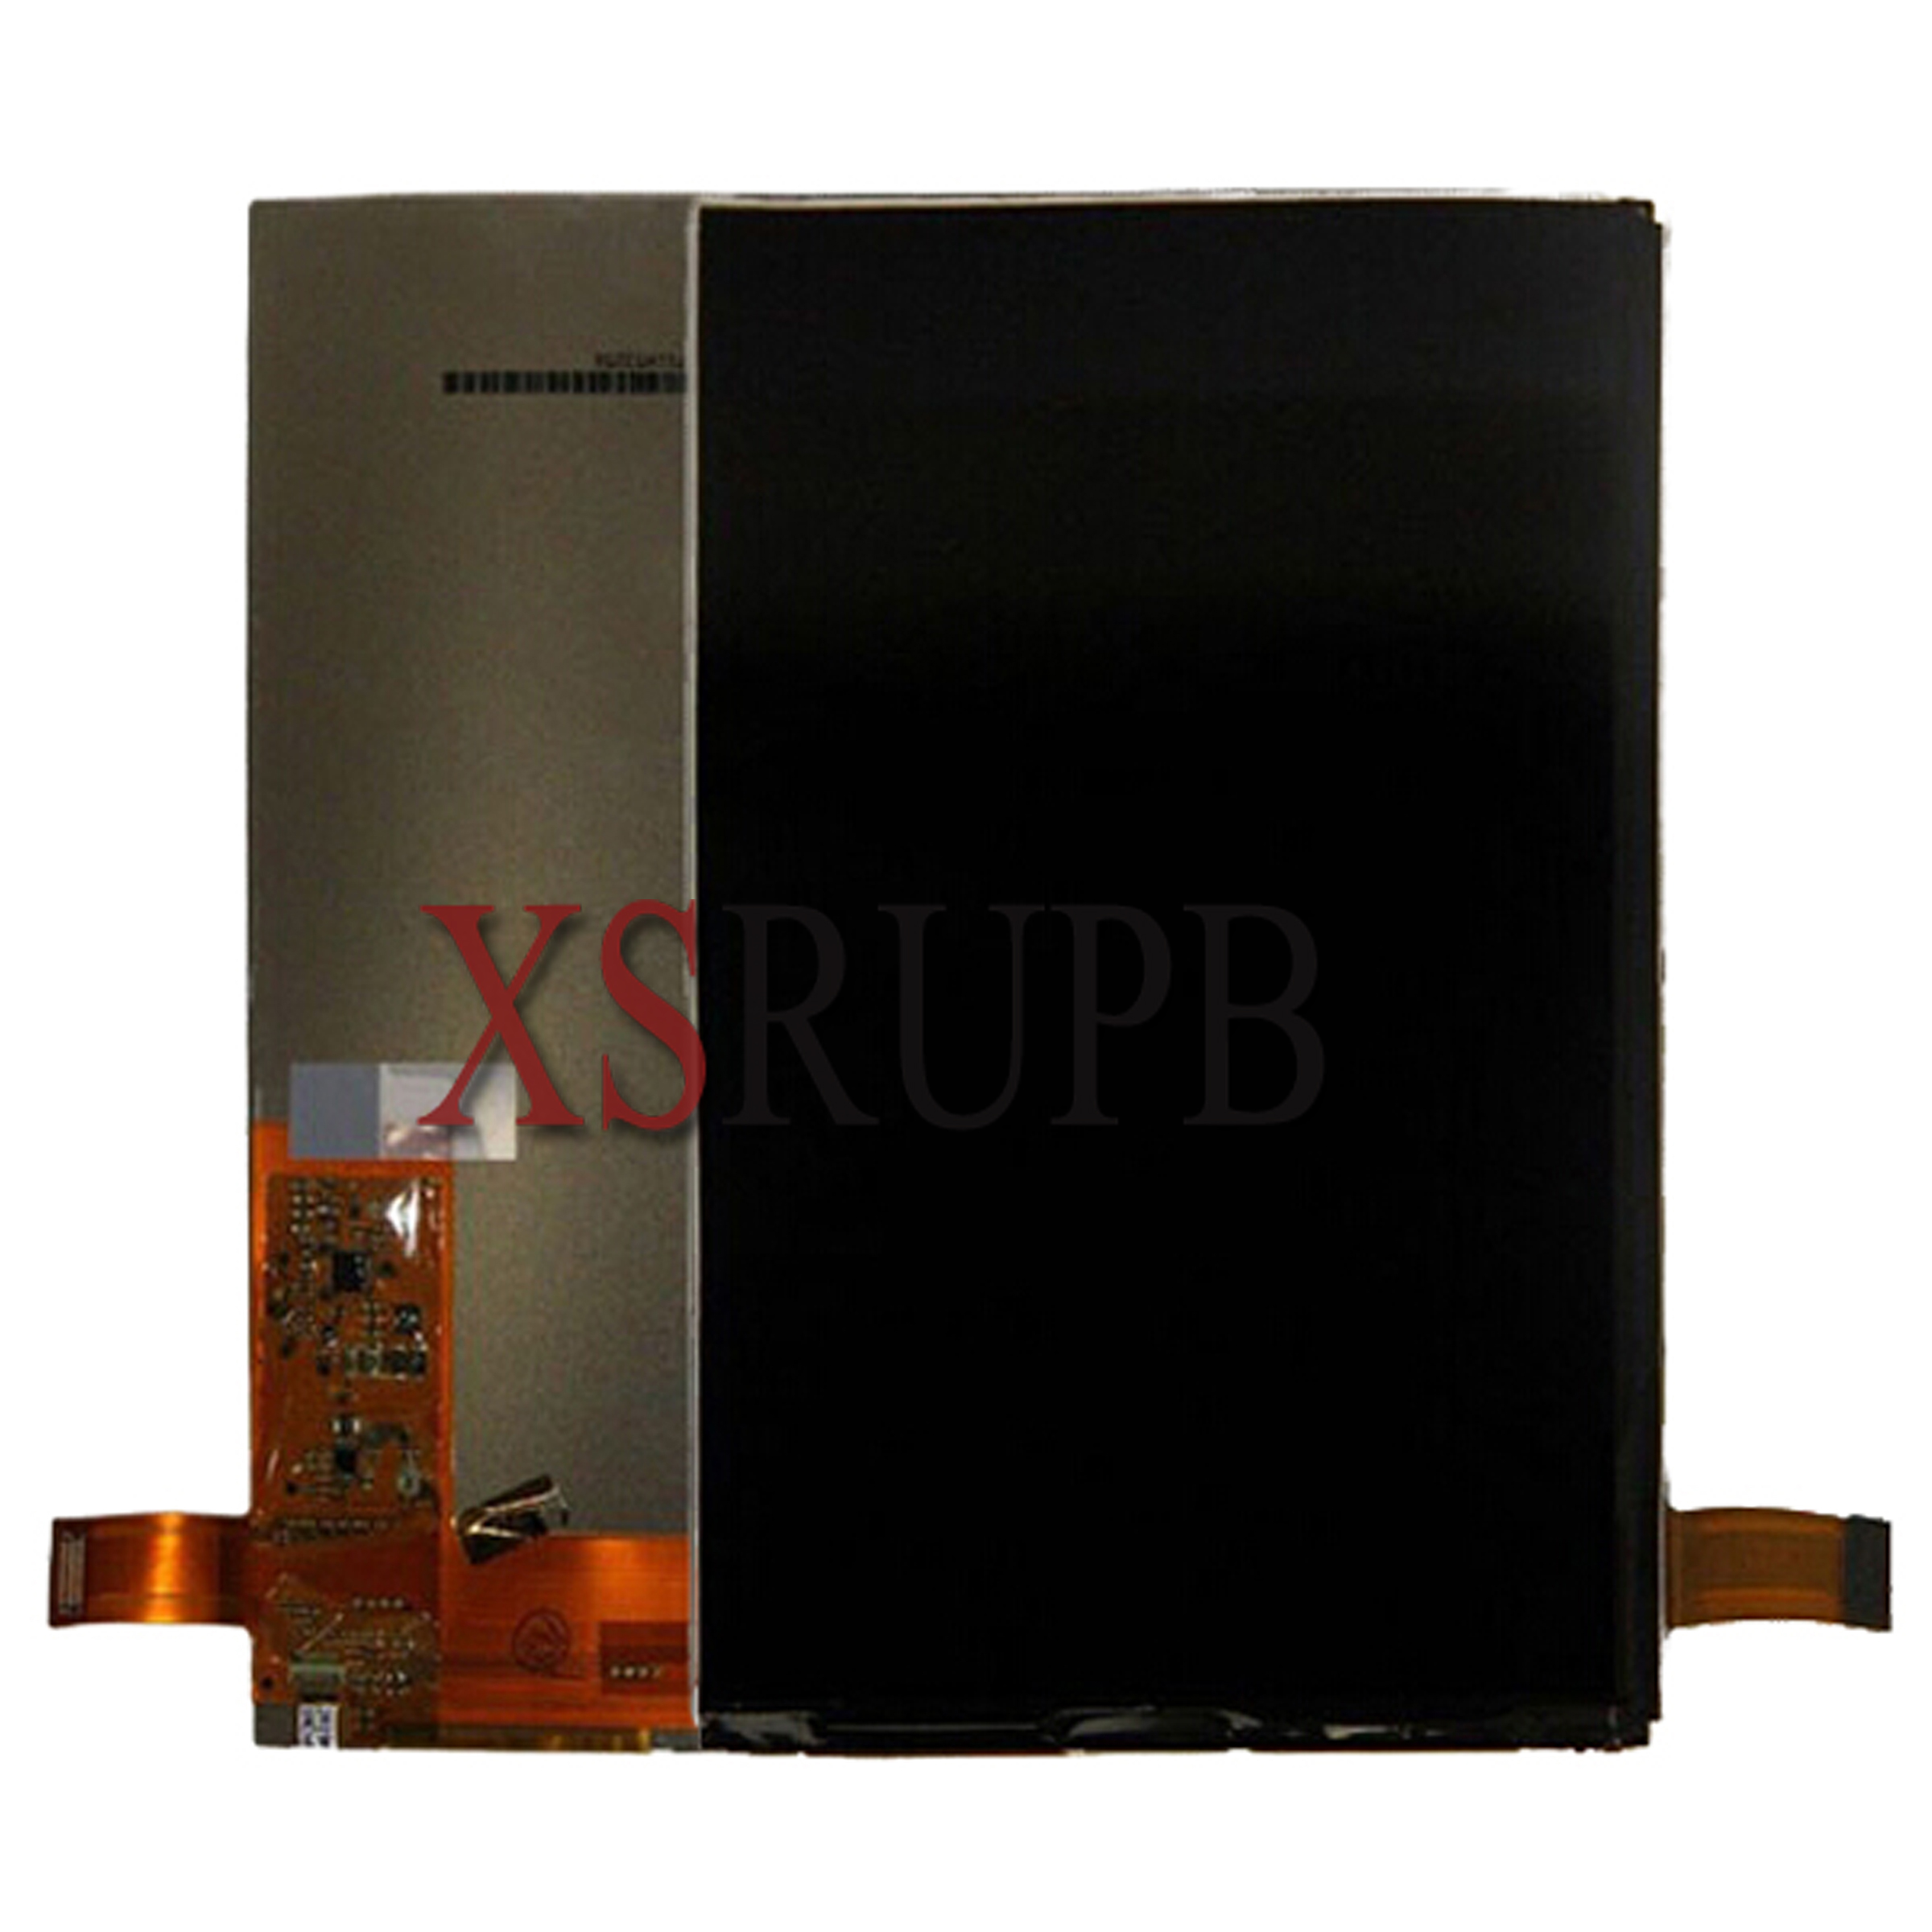 New LCD Display 7 inch PRESTIGIO MULTIPAD WIZE 3797 3G PMT3797 3G TABLET LCD Screen Panel Lens Frame replacement Free Shipping new prestigio multipad pmt3008